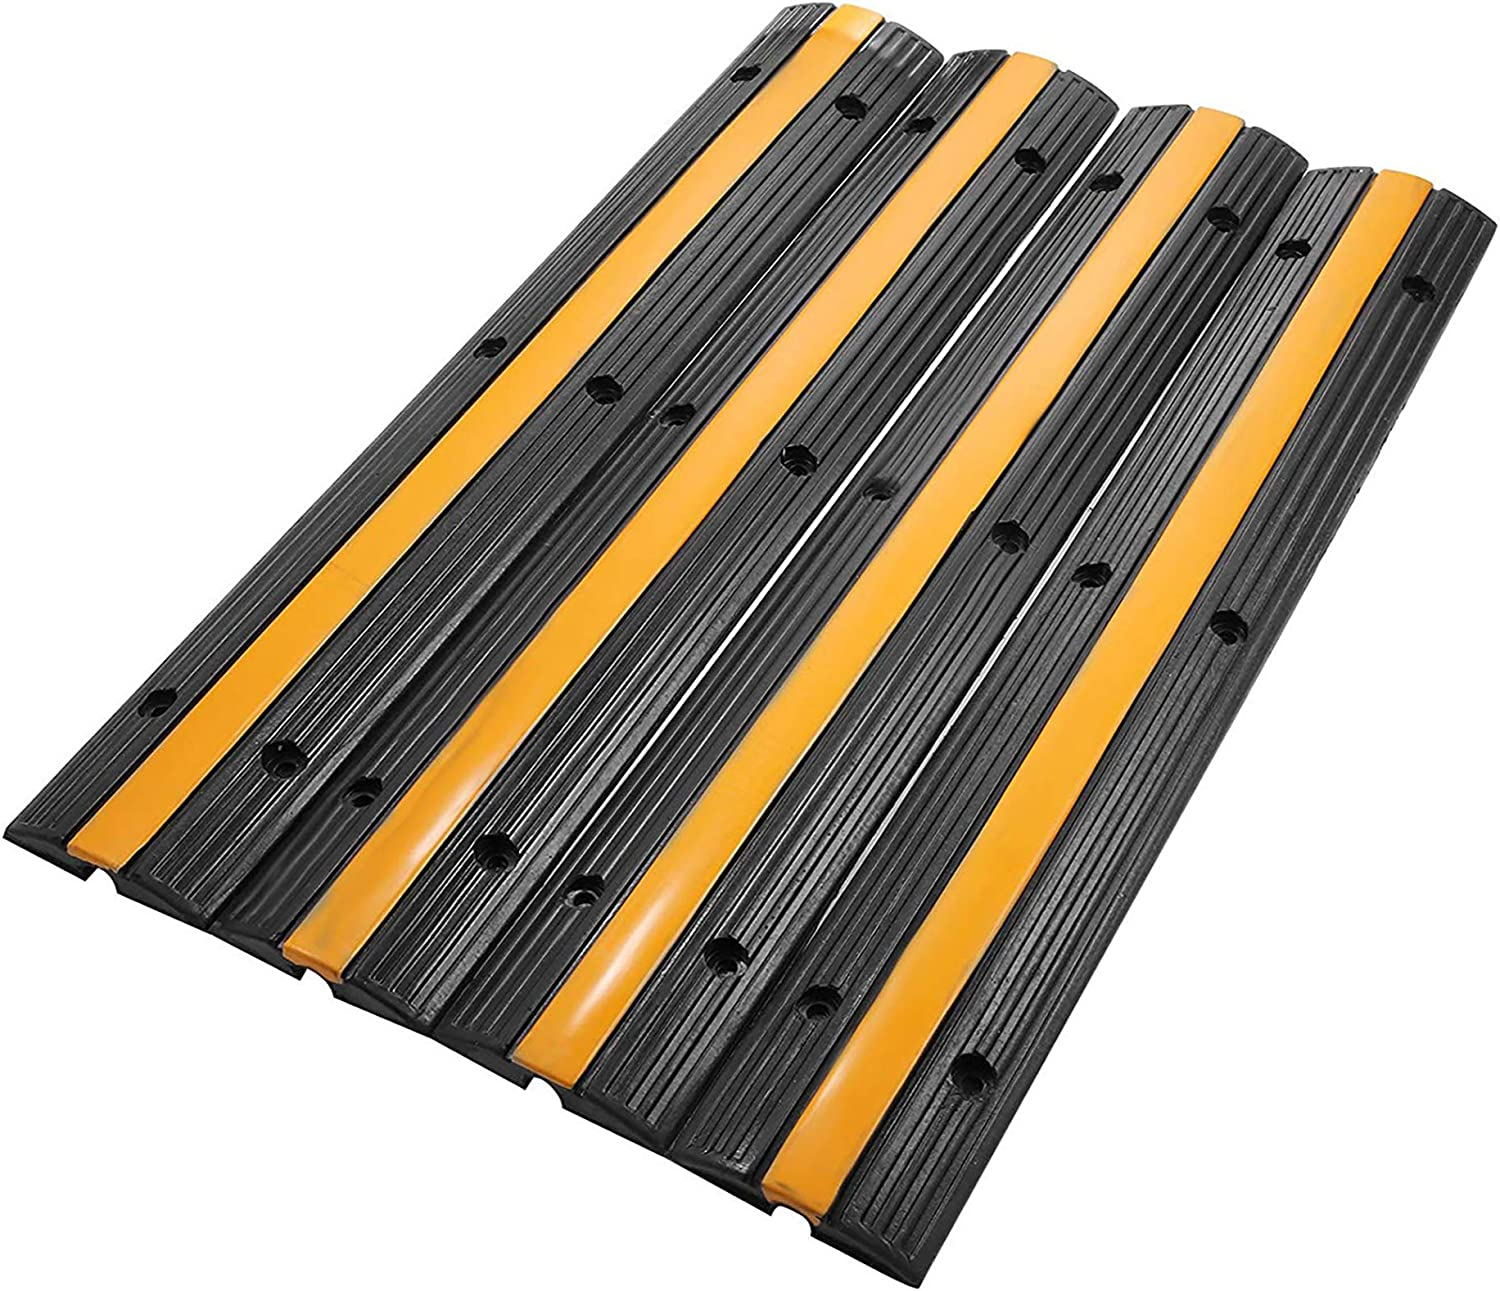 4pcs Cable Protector Ramp Wire Cover Rubber 1 Channel Warehouse PVC Modular